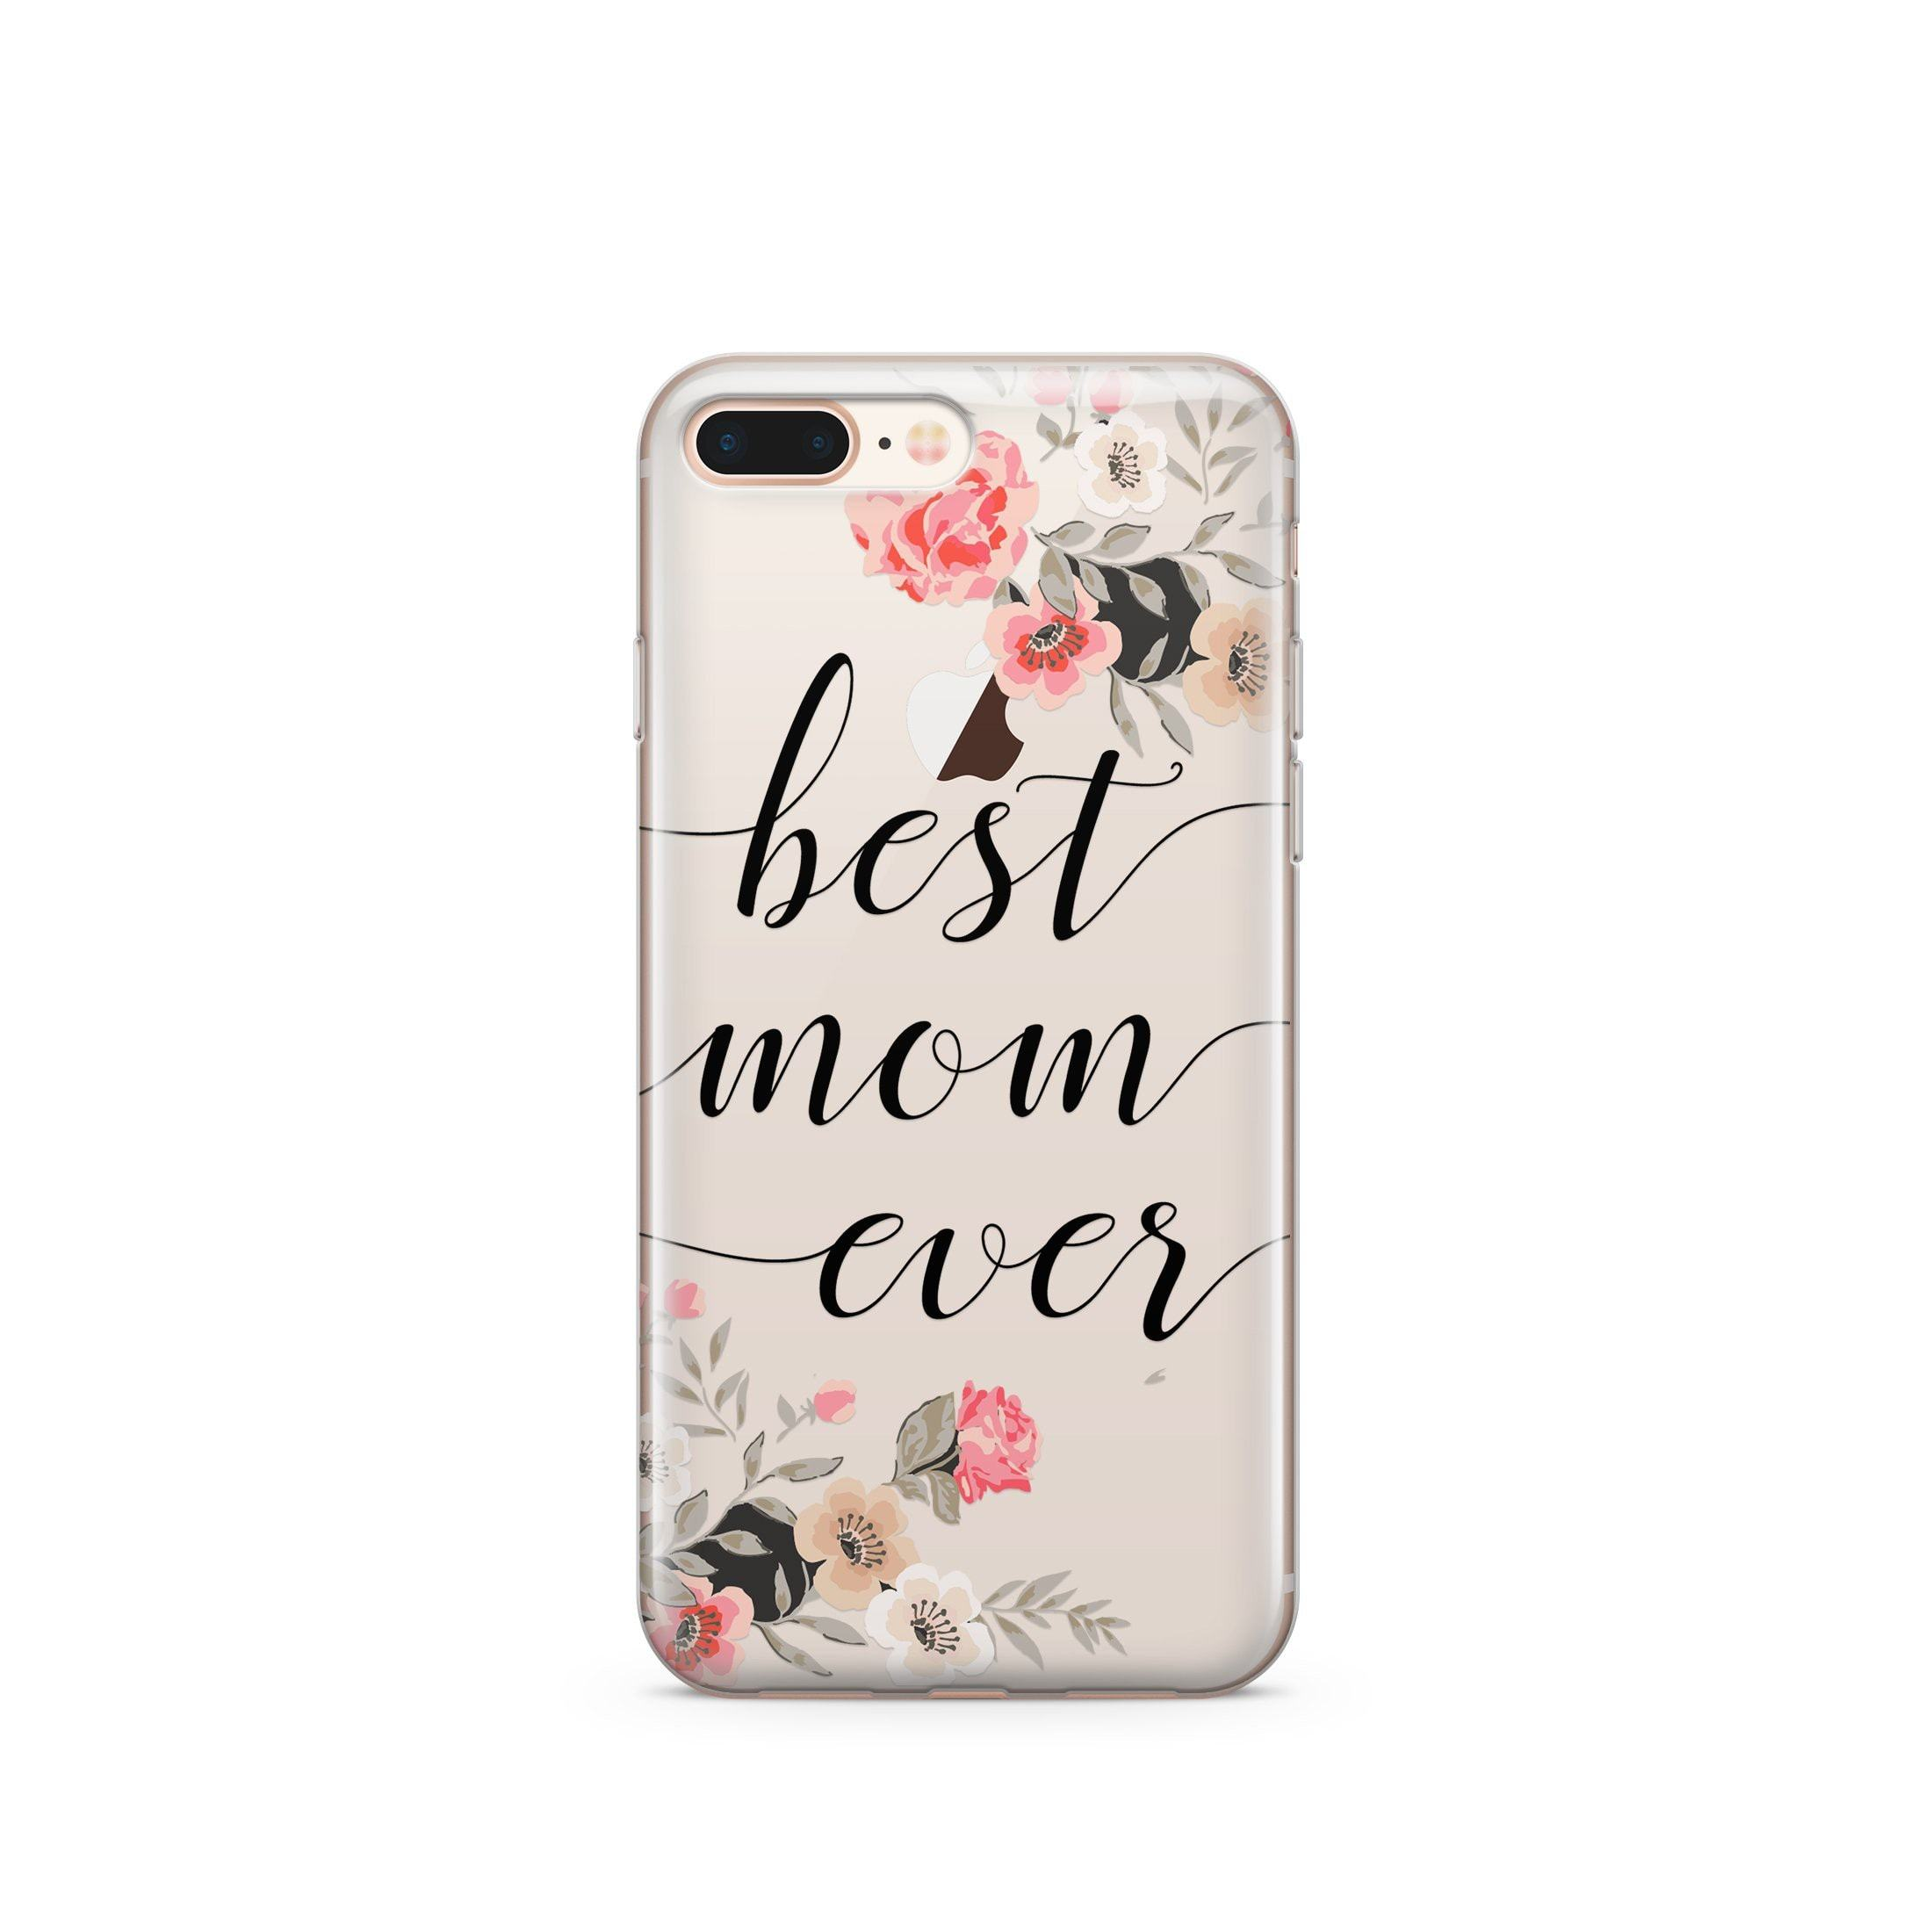 Best Mom Ever - Clear Case Cover